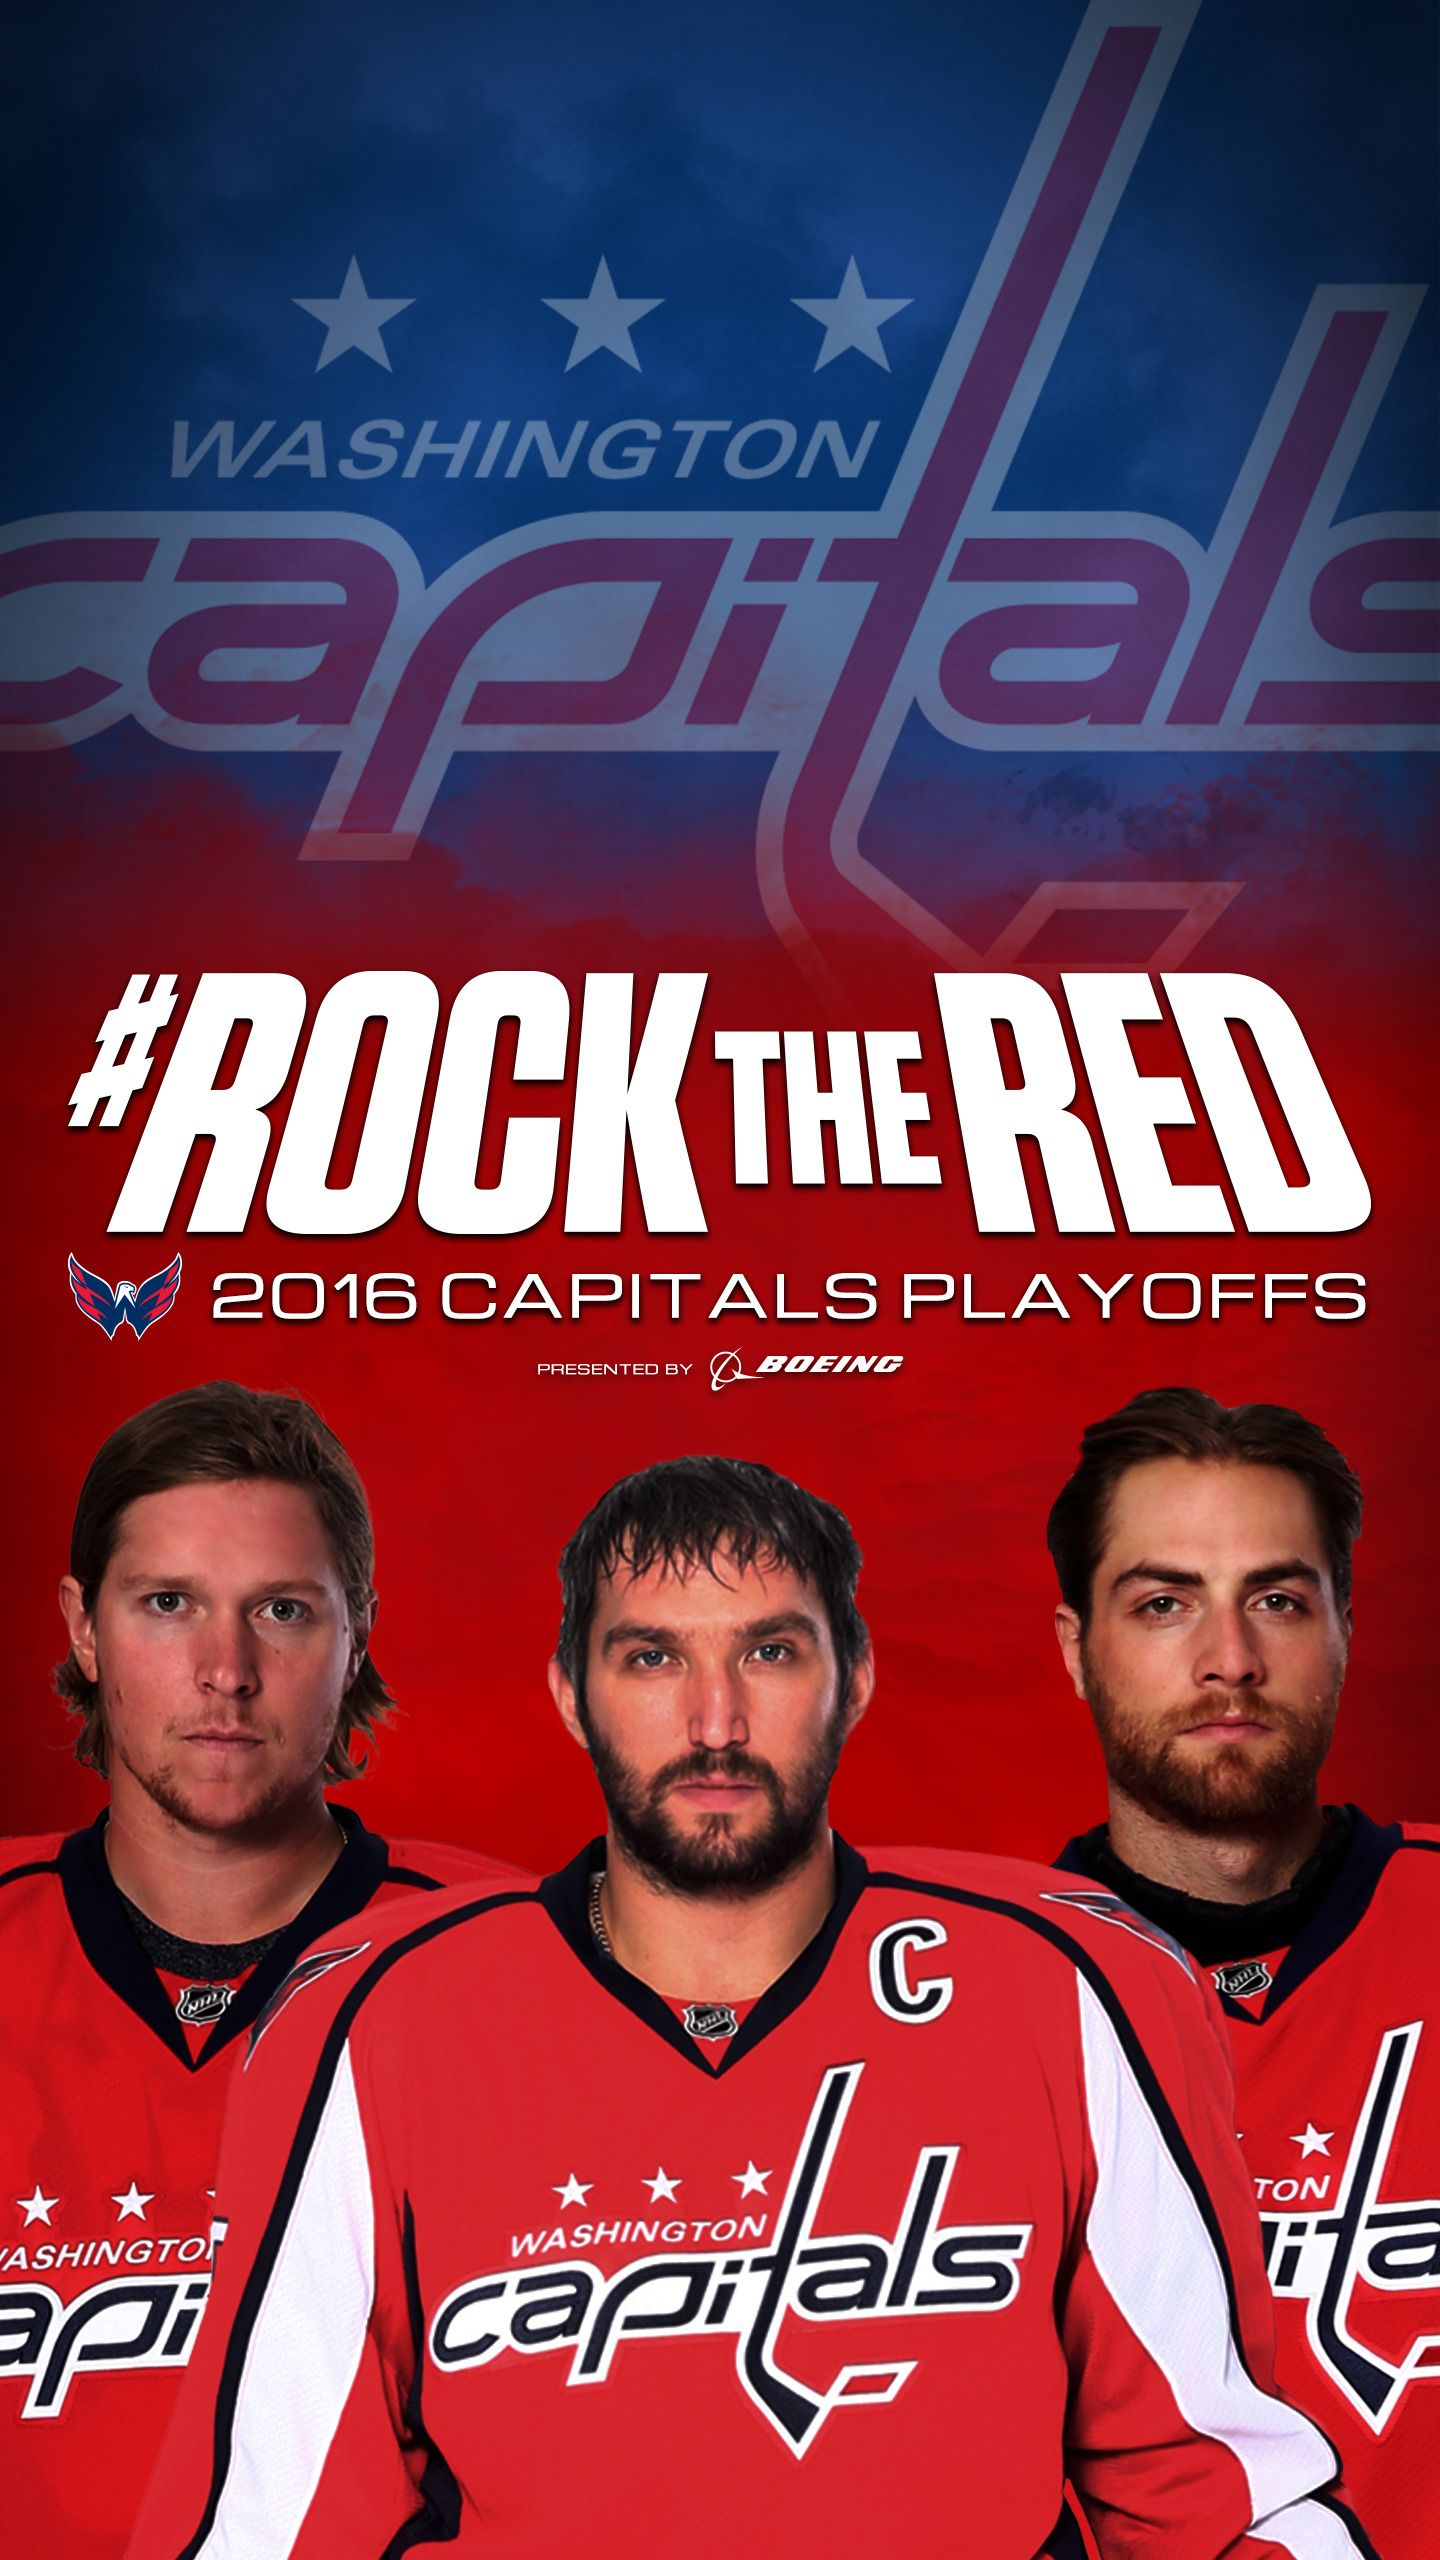 2016 Playoffs Capitals Digital Downloads - Washington Capitals ... 0ca82ba1763